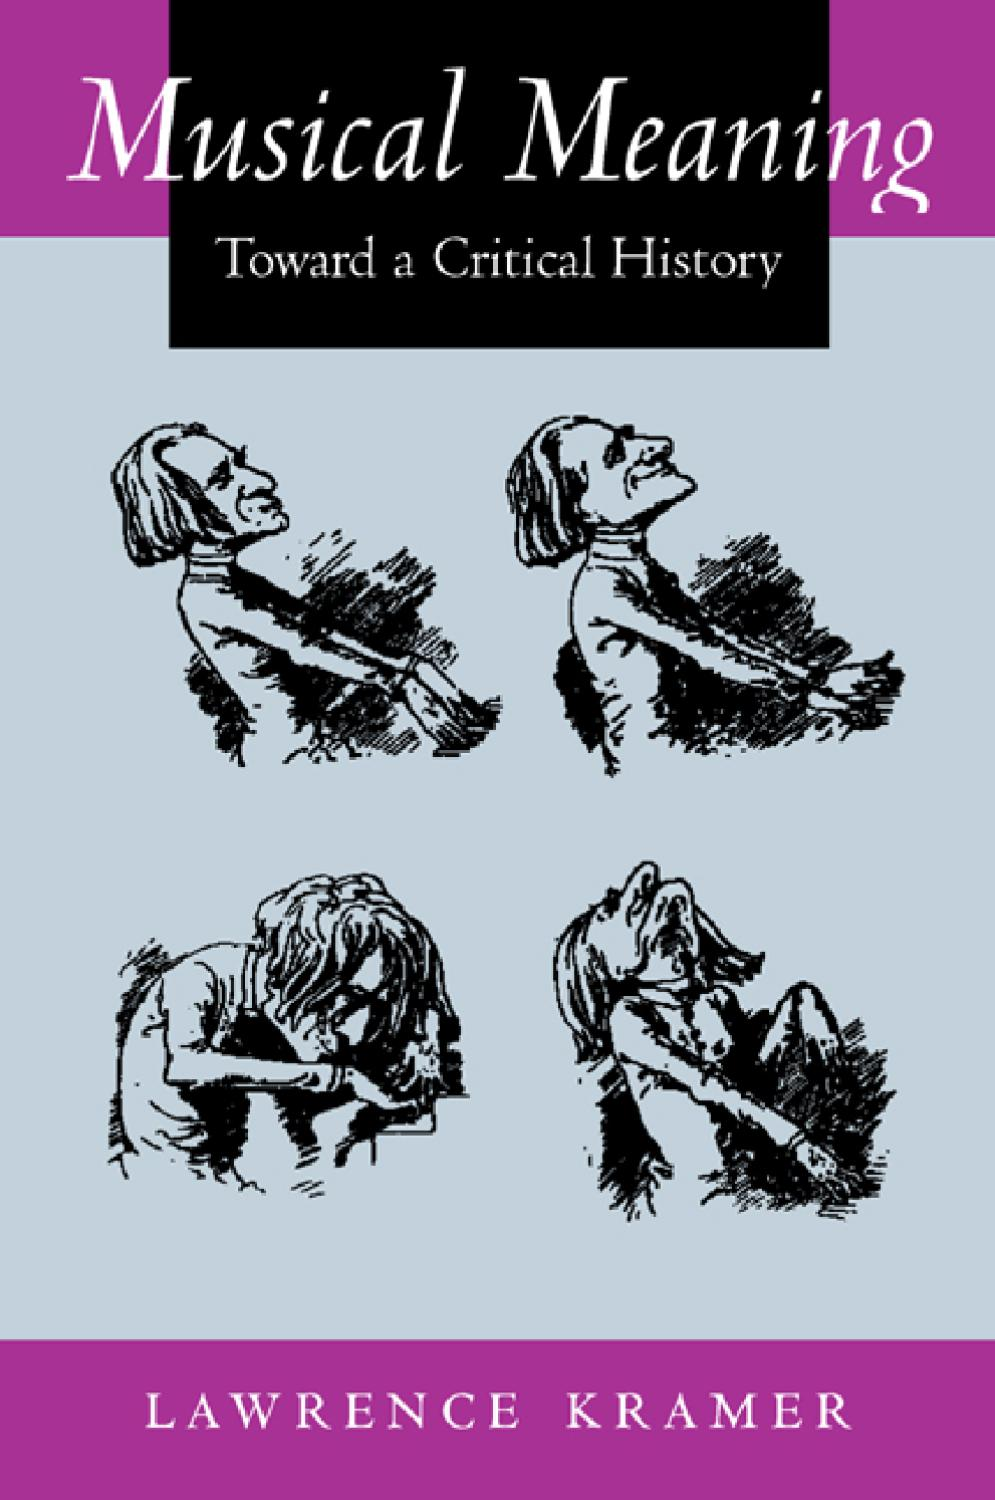 Musical Meaning - Toward a Critical History by Soni Petrovski - issuu